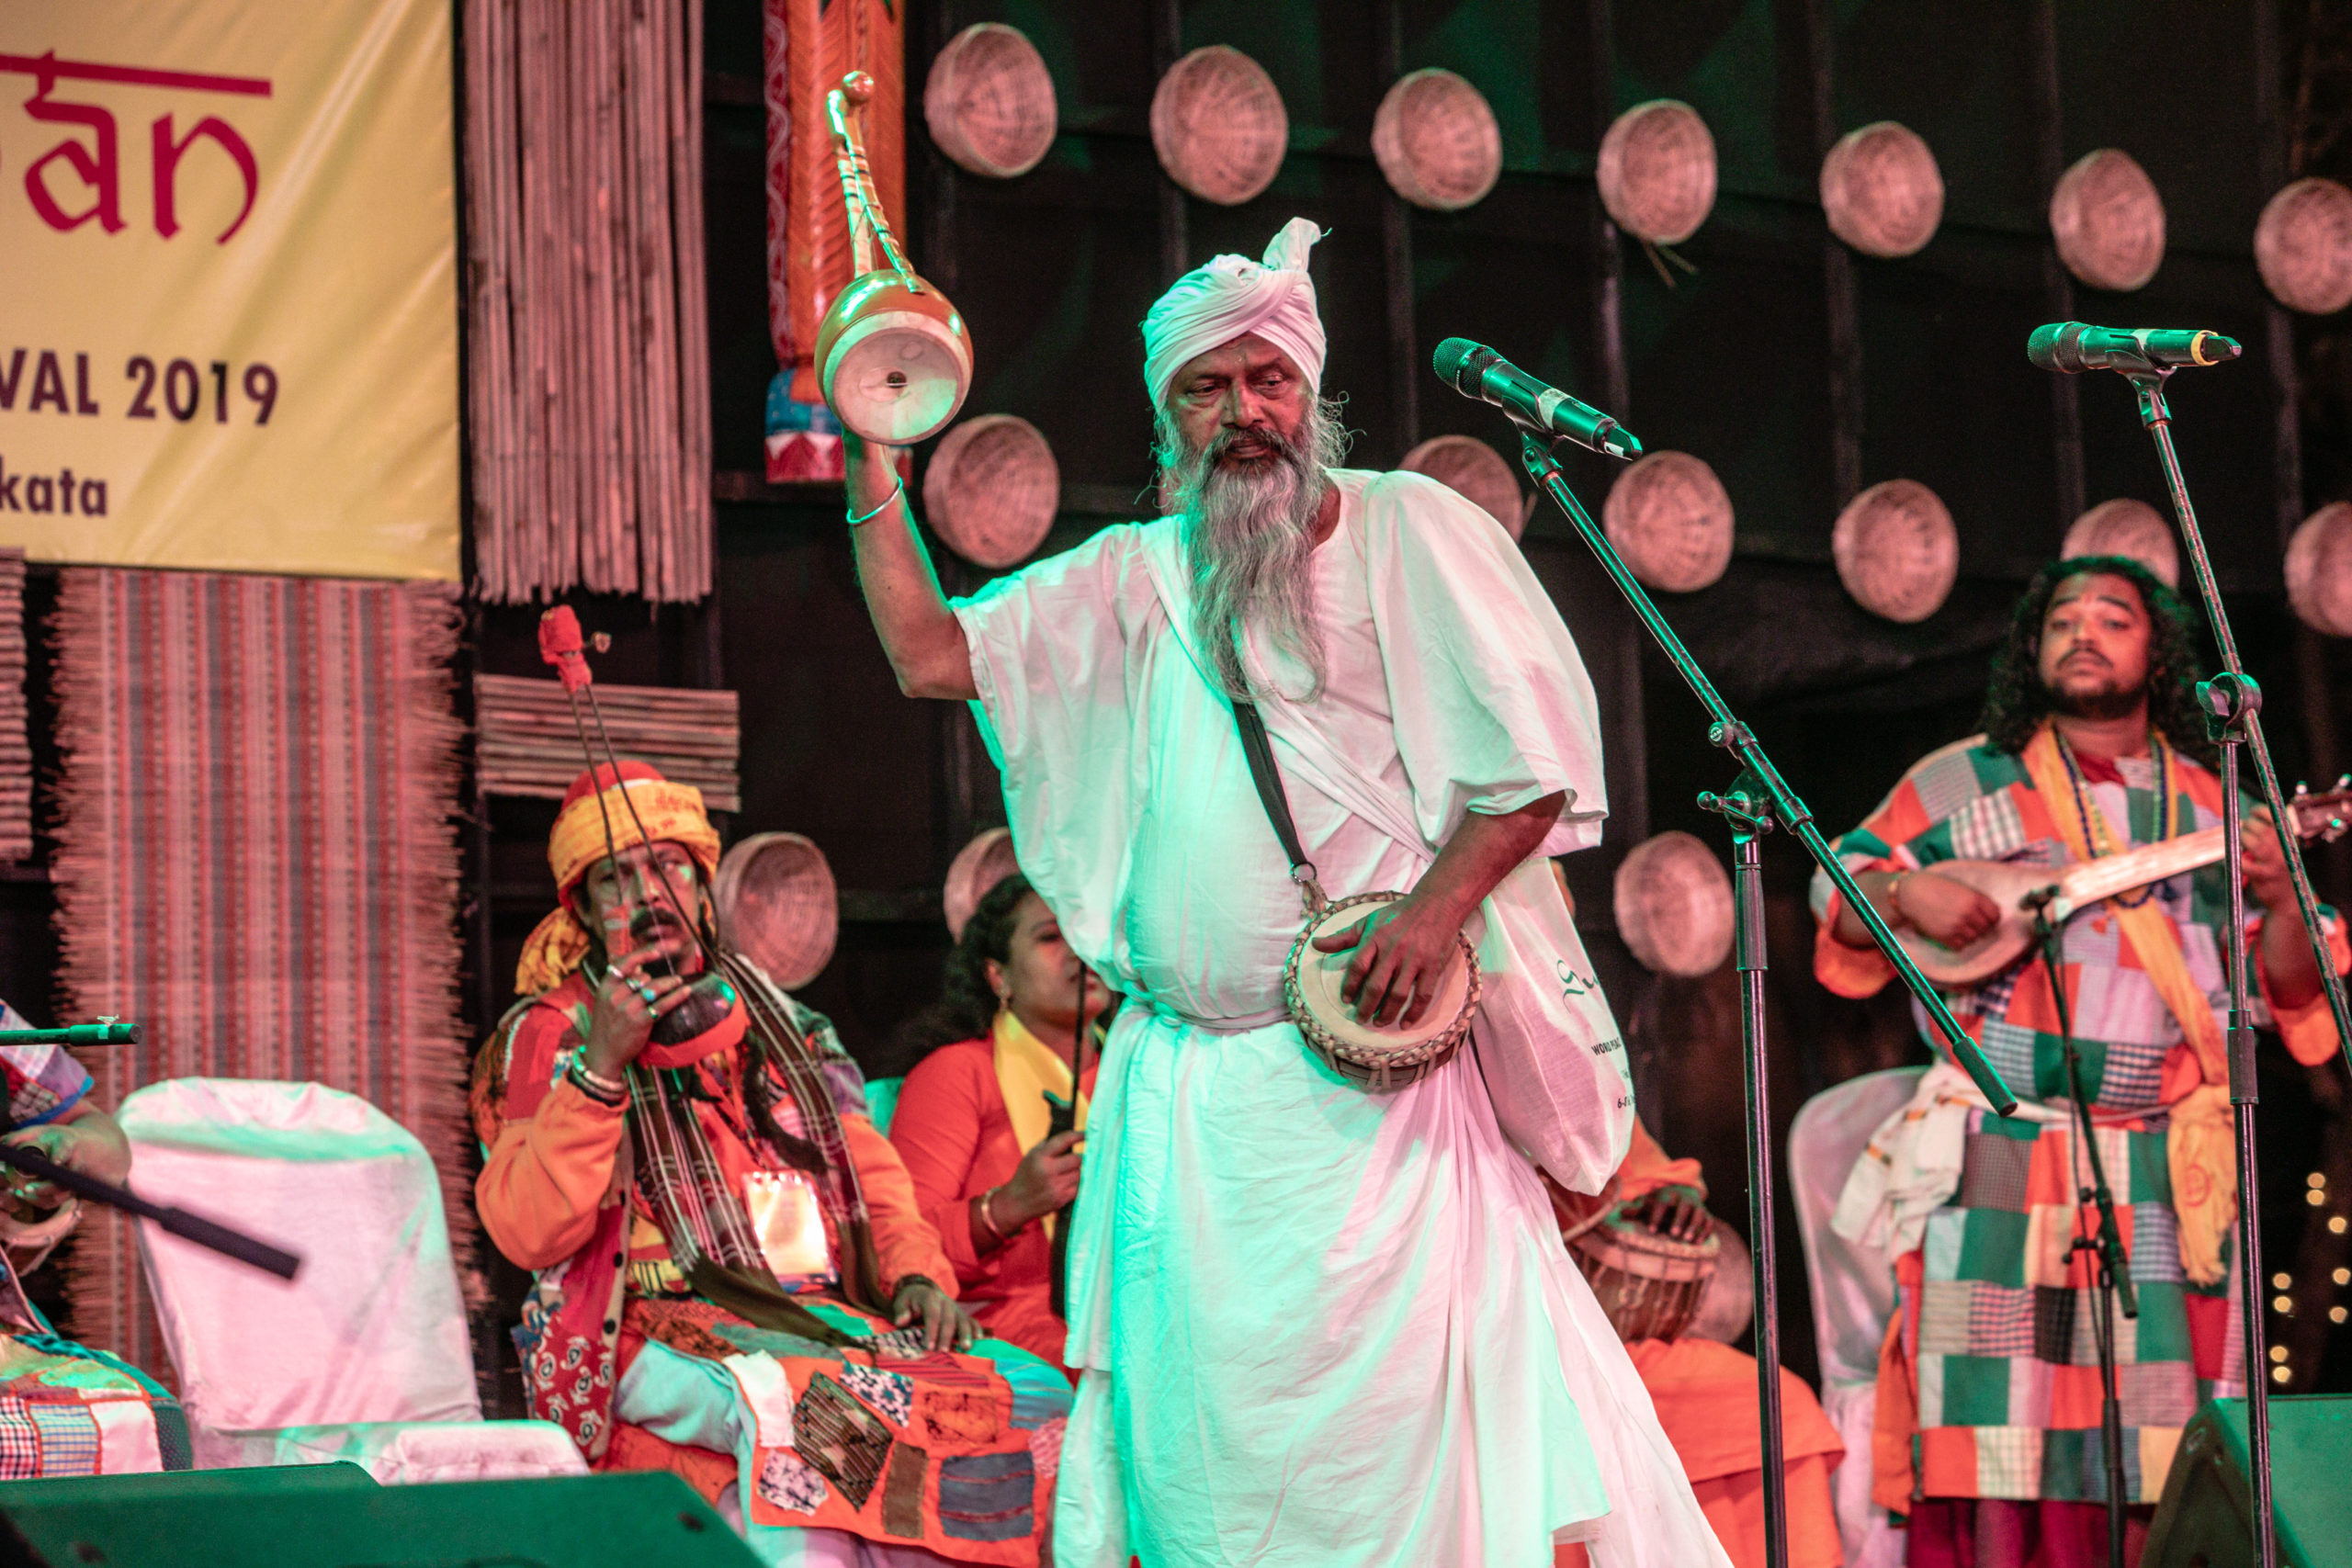 Bhajan Das Bairagya performing at Sur Jahan 2019